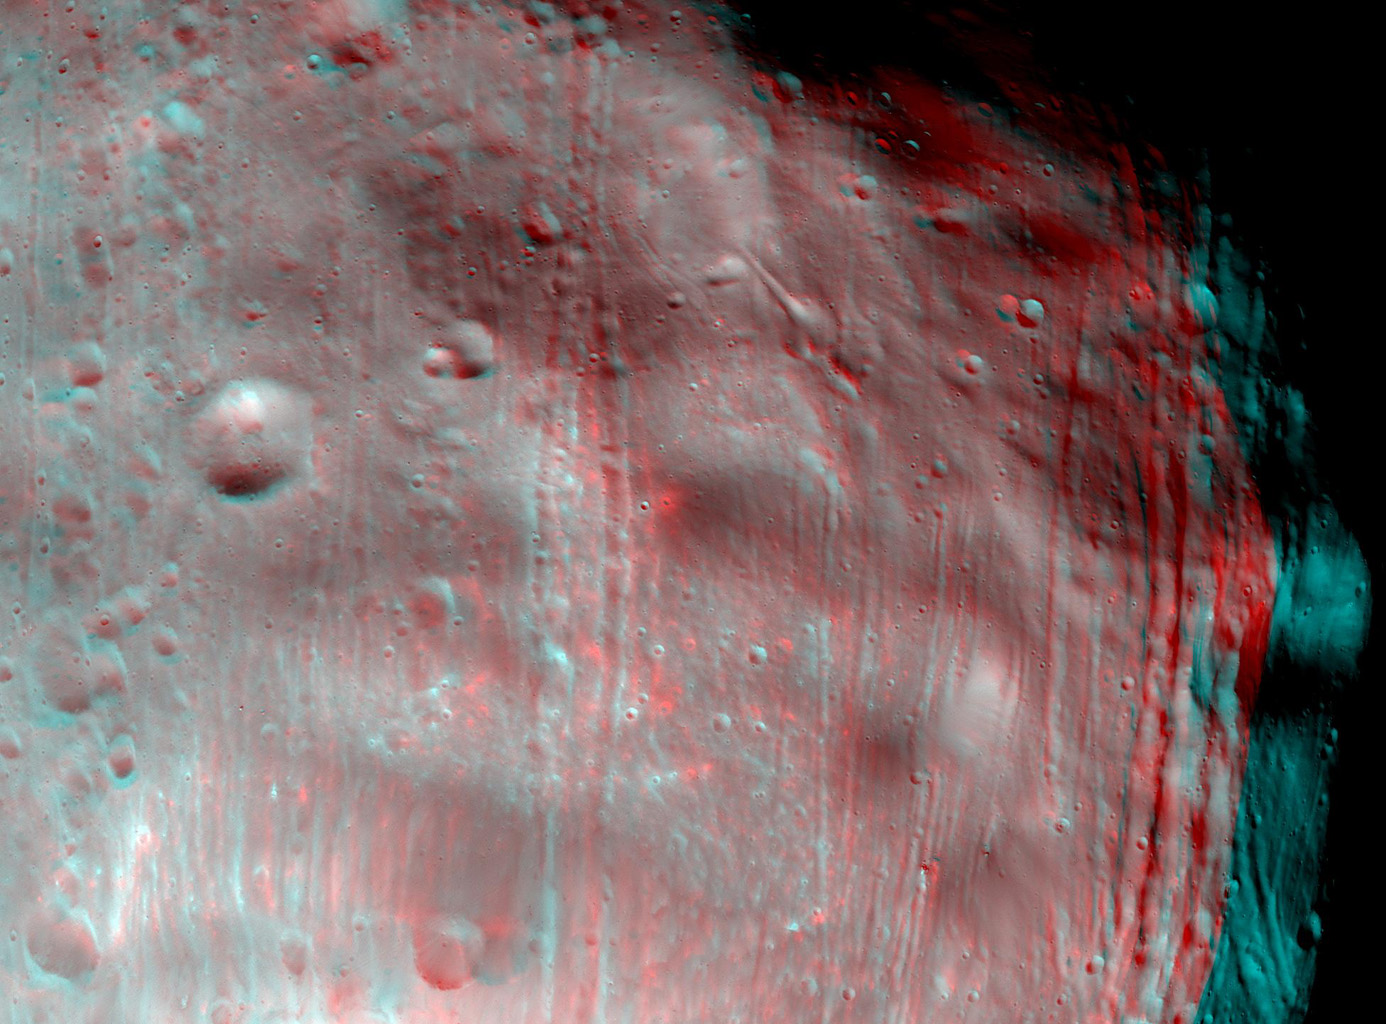 NASA's Mars Reconnaissance Orbiter took two images of the larger of Mars' two moons, Phobos, within 10 minutes of each other on March 23, 2008. 3D glasses are necessary to view this image.